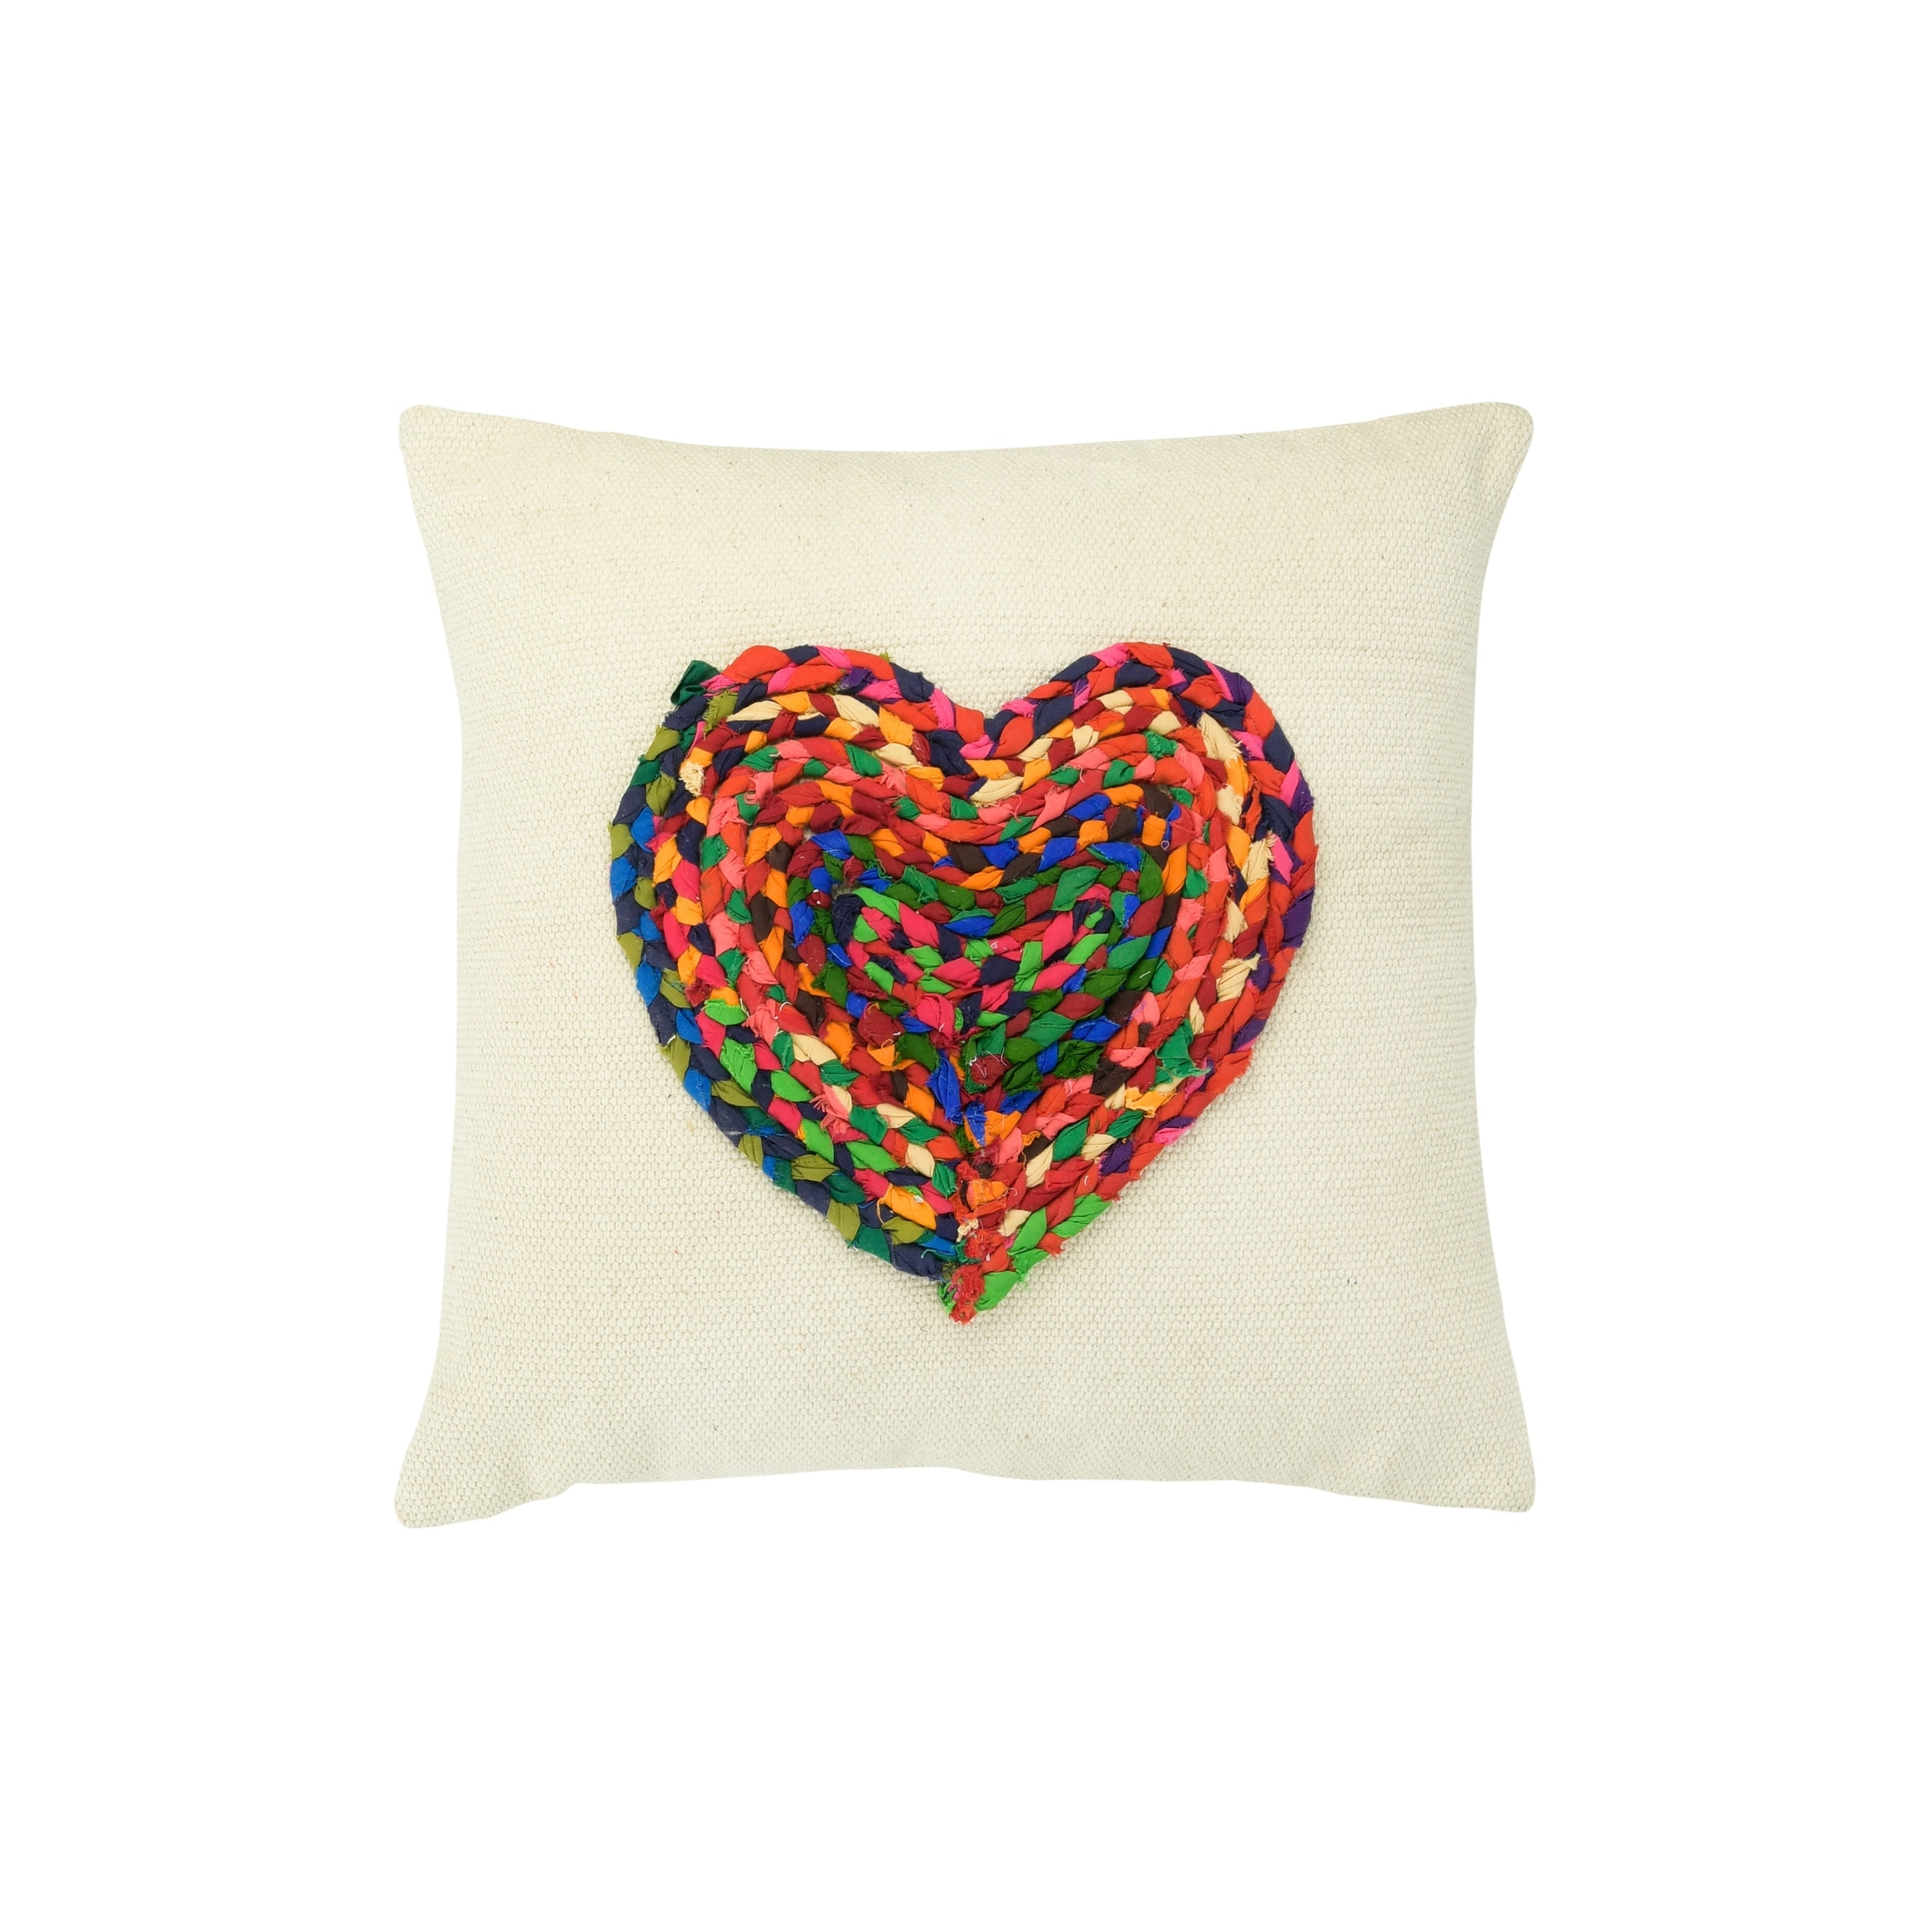 Appliqued Chindi Heart Square Cotton Pillow Overstock 31629245